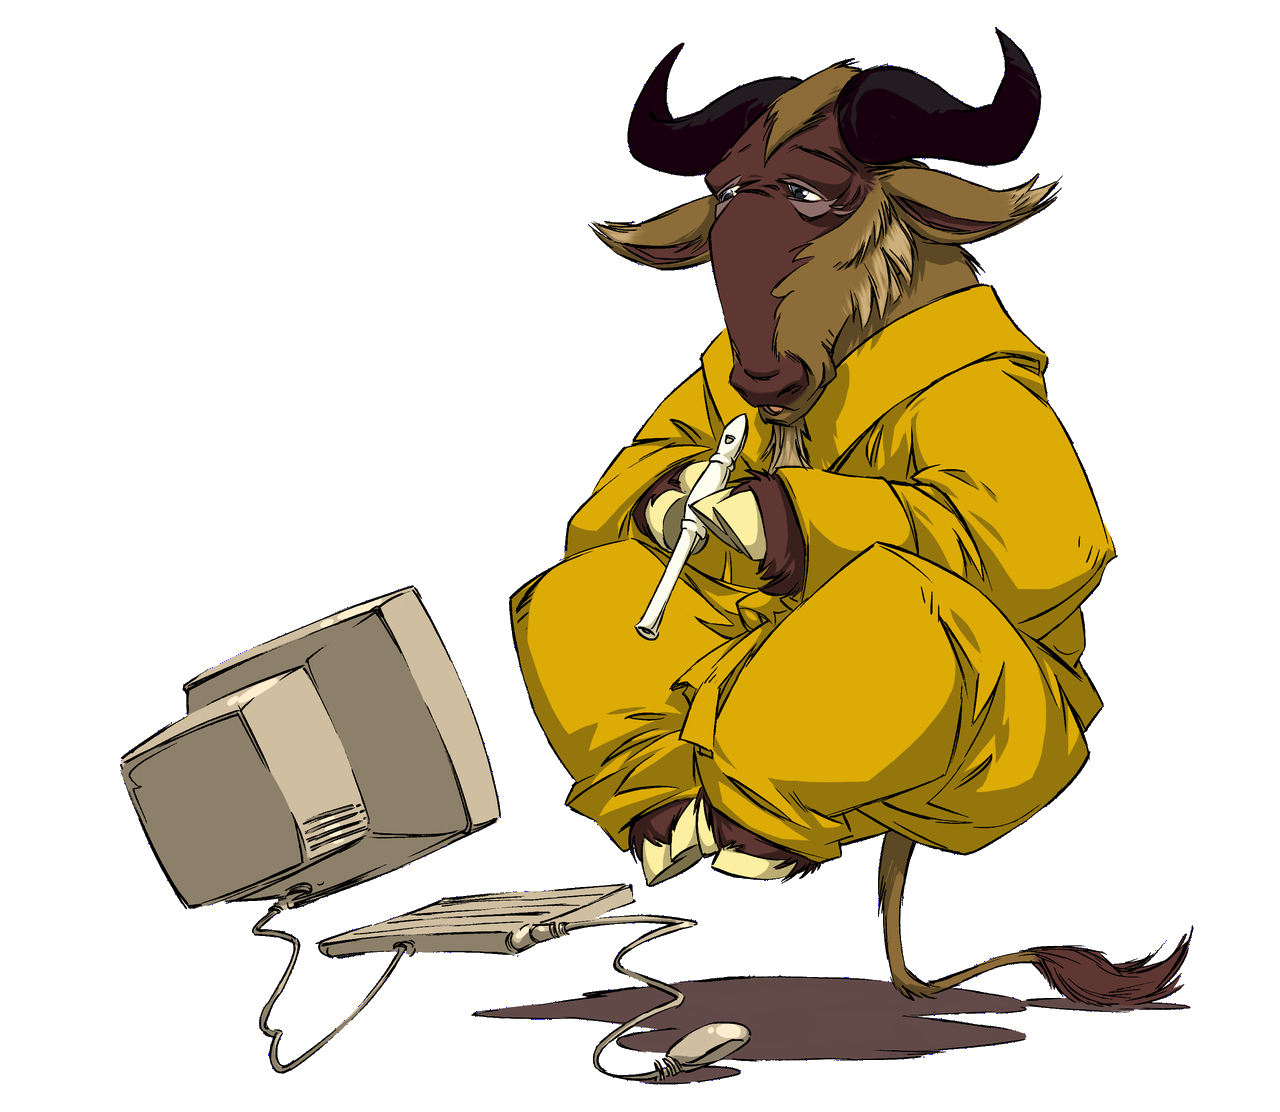 https://www.gnu.org/graphics/meditate.png